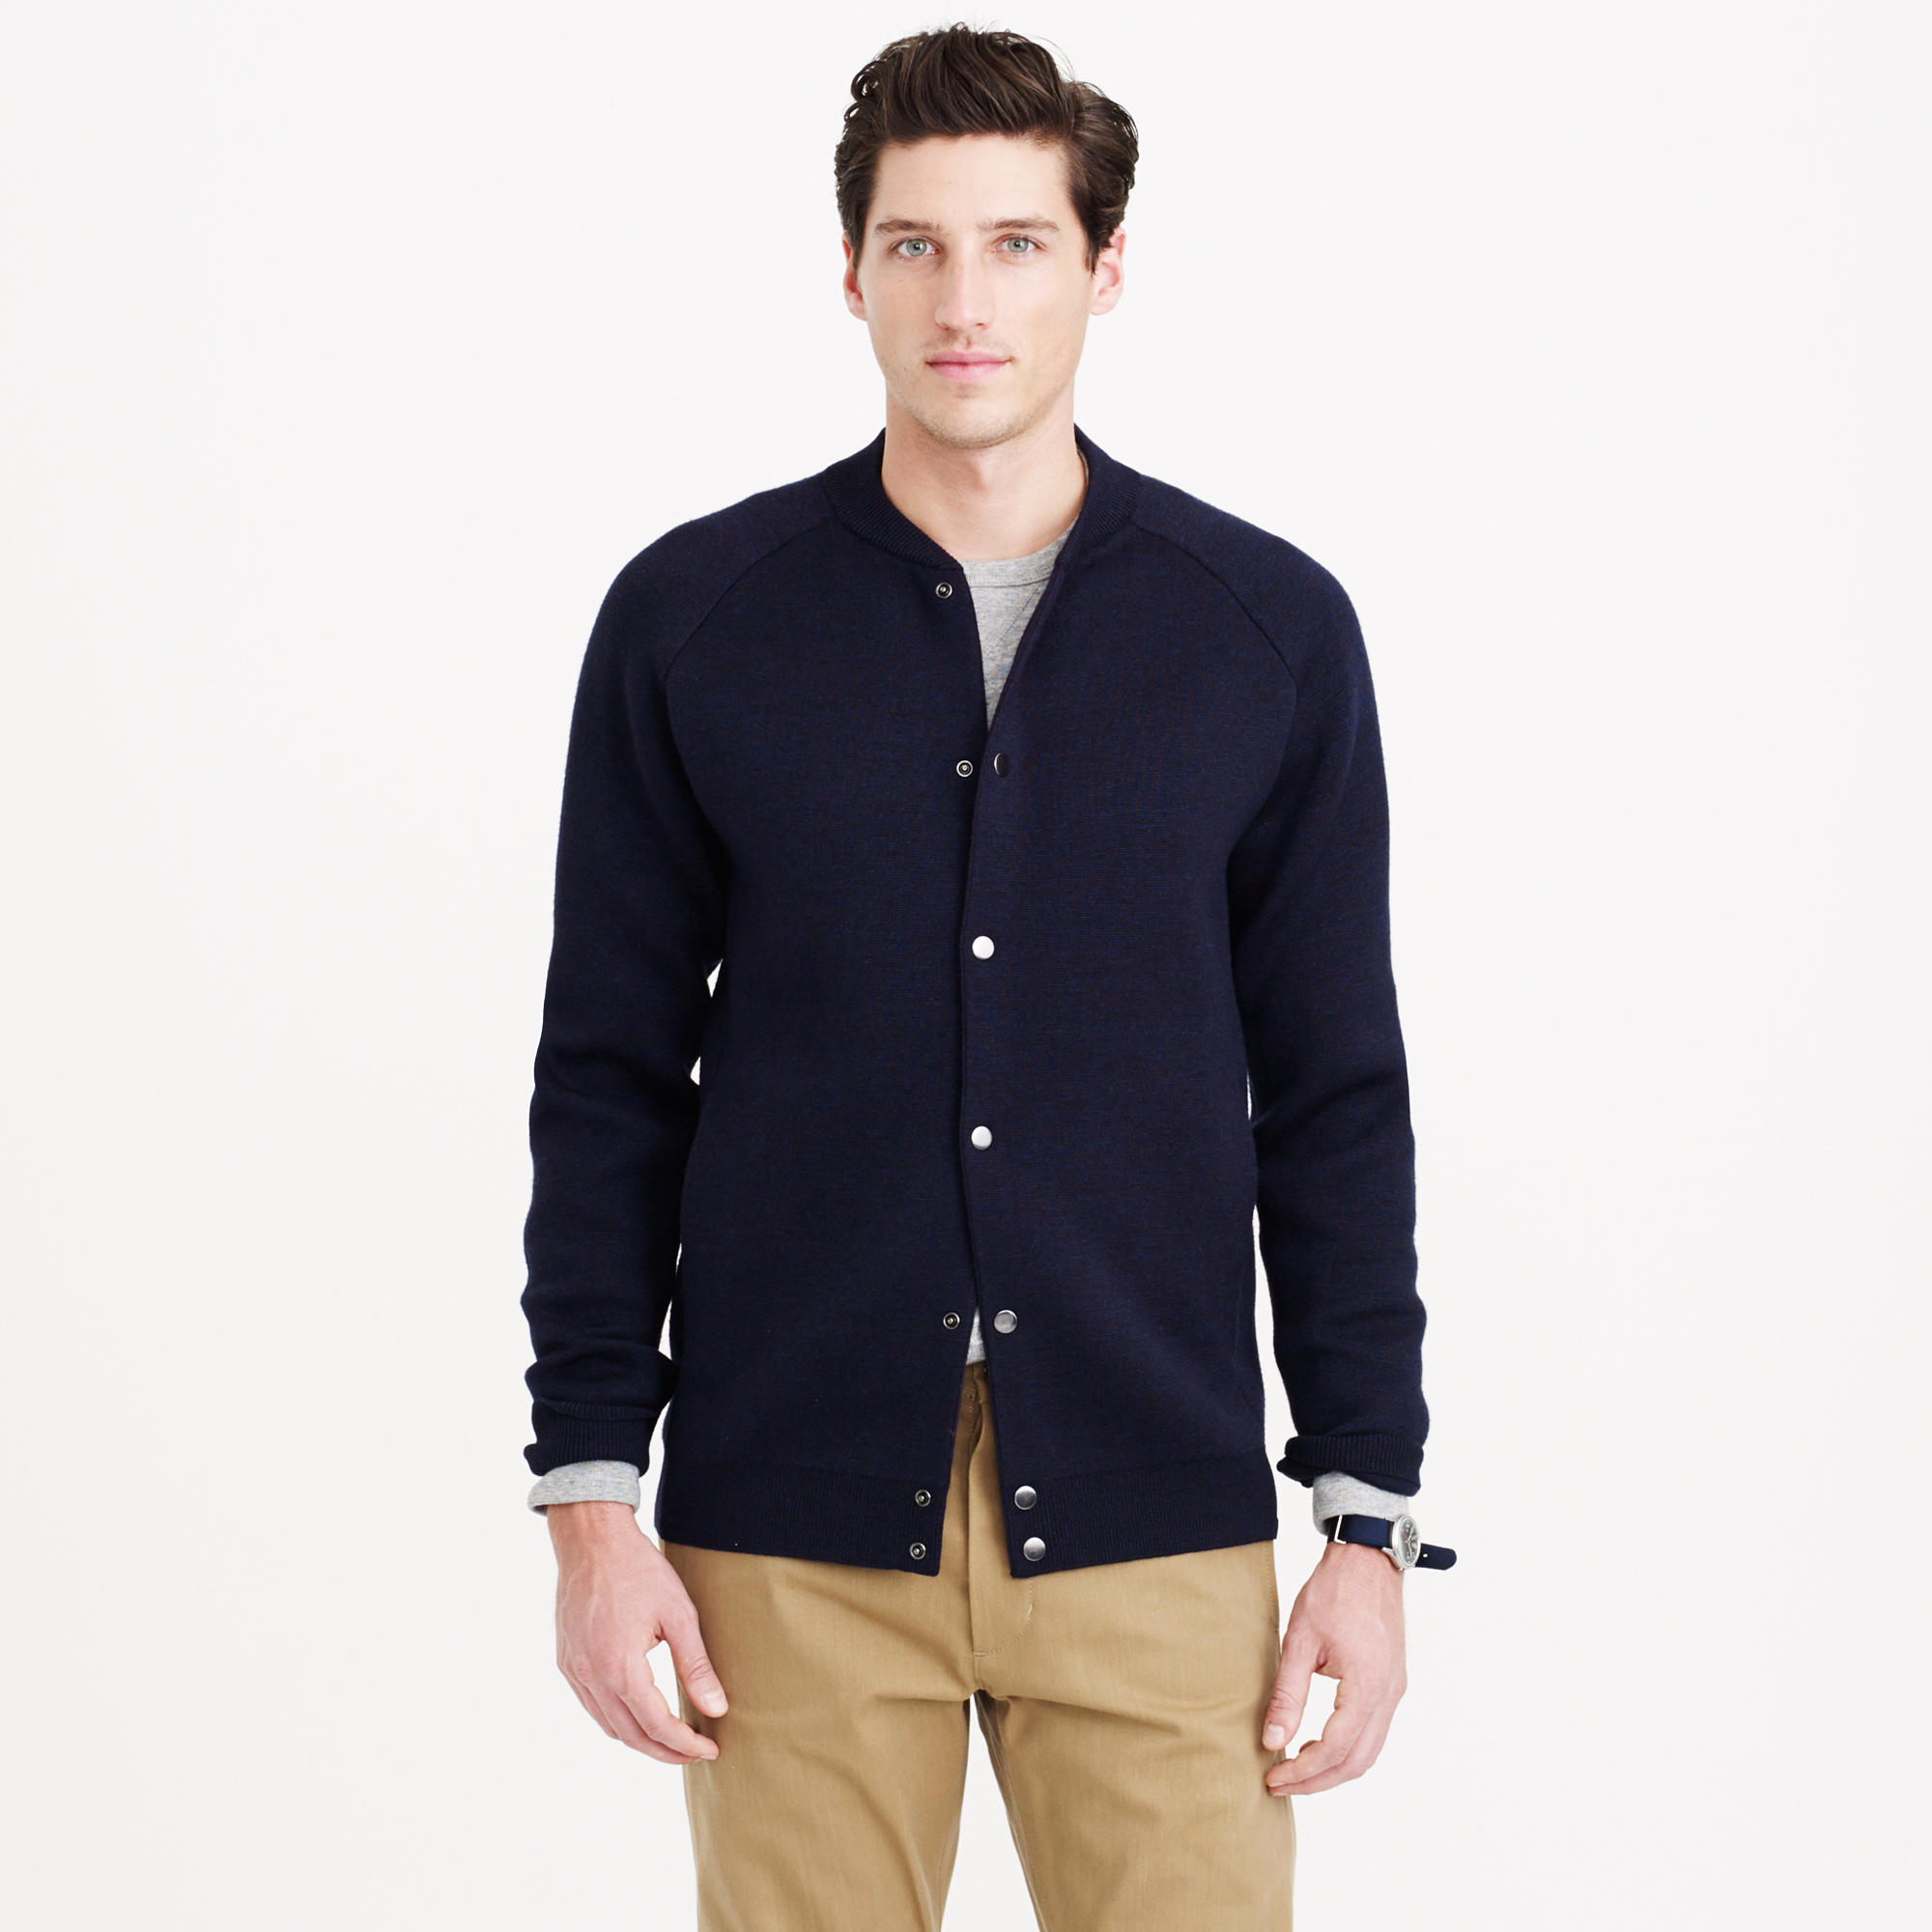 Lyst j crew norse projects arnold neoprene jacket in for J crew mens outfits